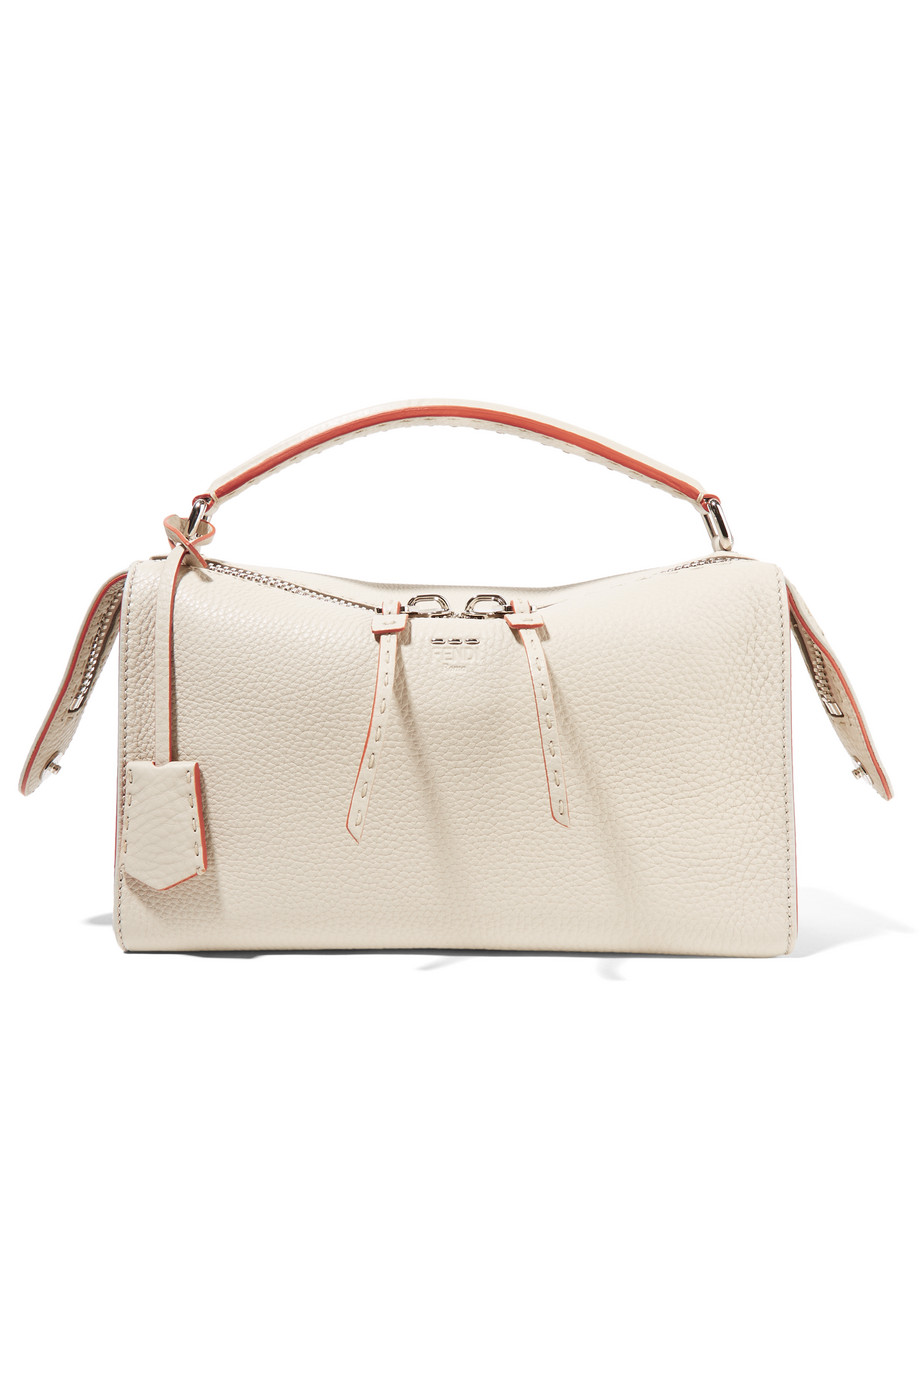 Fendi Lei Selleria Textured-Leather Tote, Ivory, Women's